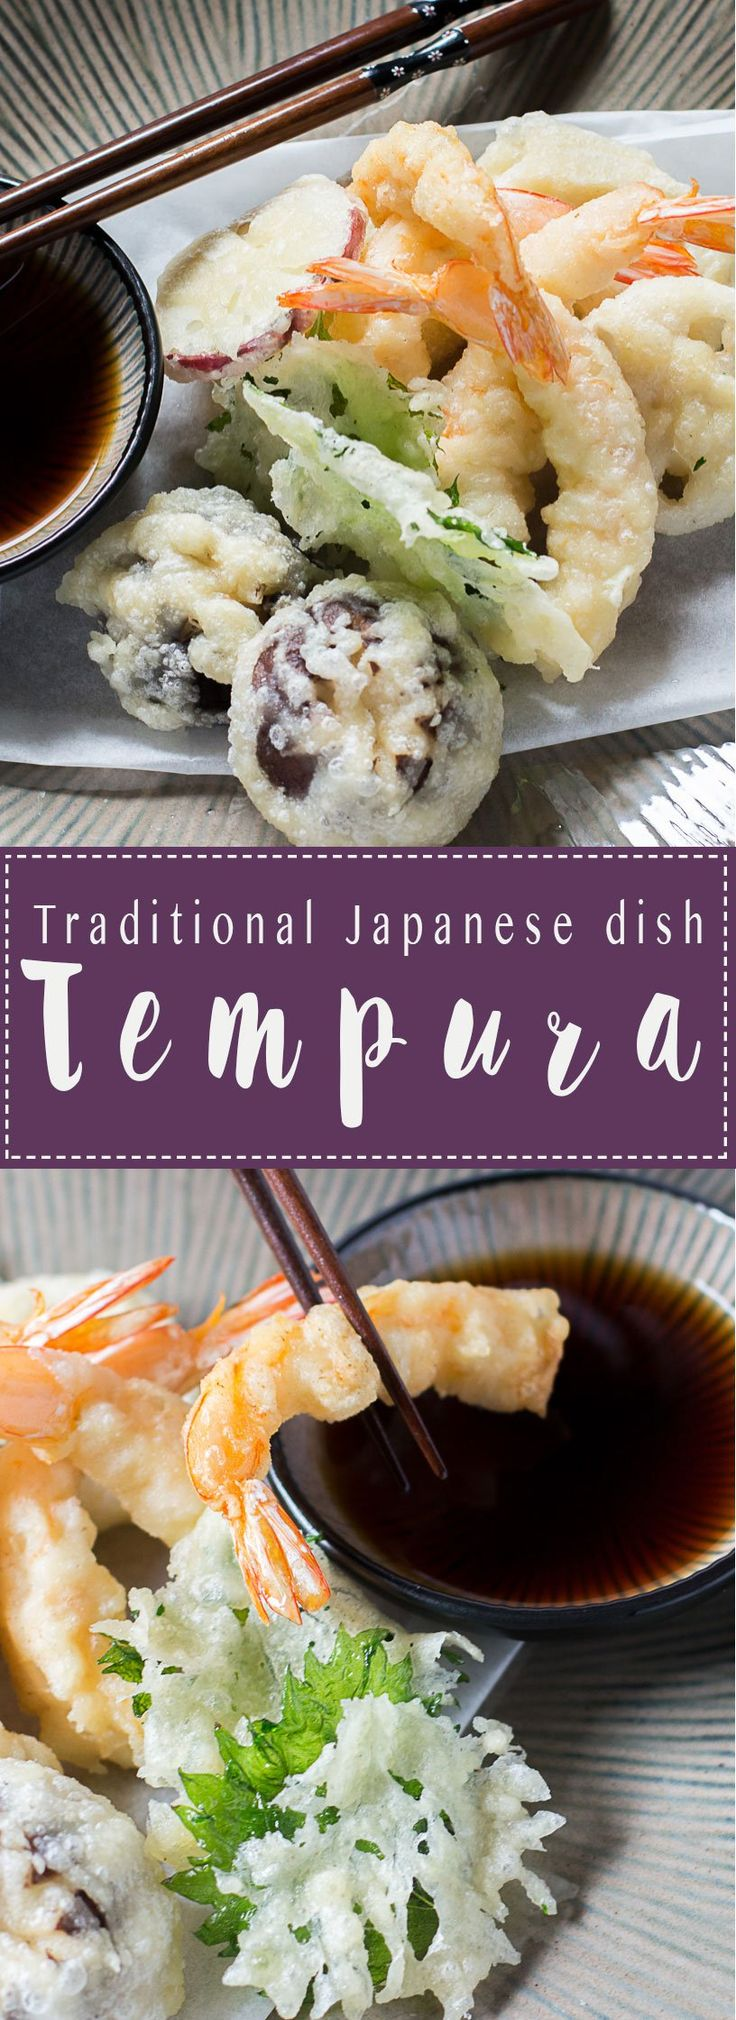 Tempura. Featured by A Hedgehog in the Kitchen. www.ahedgehoginthekitchen.com.